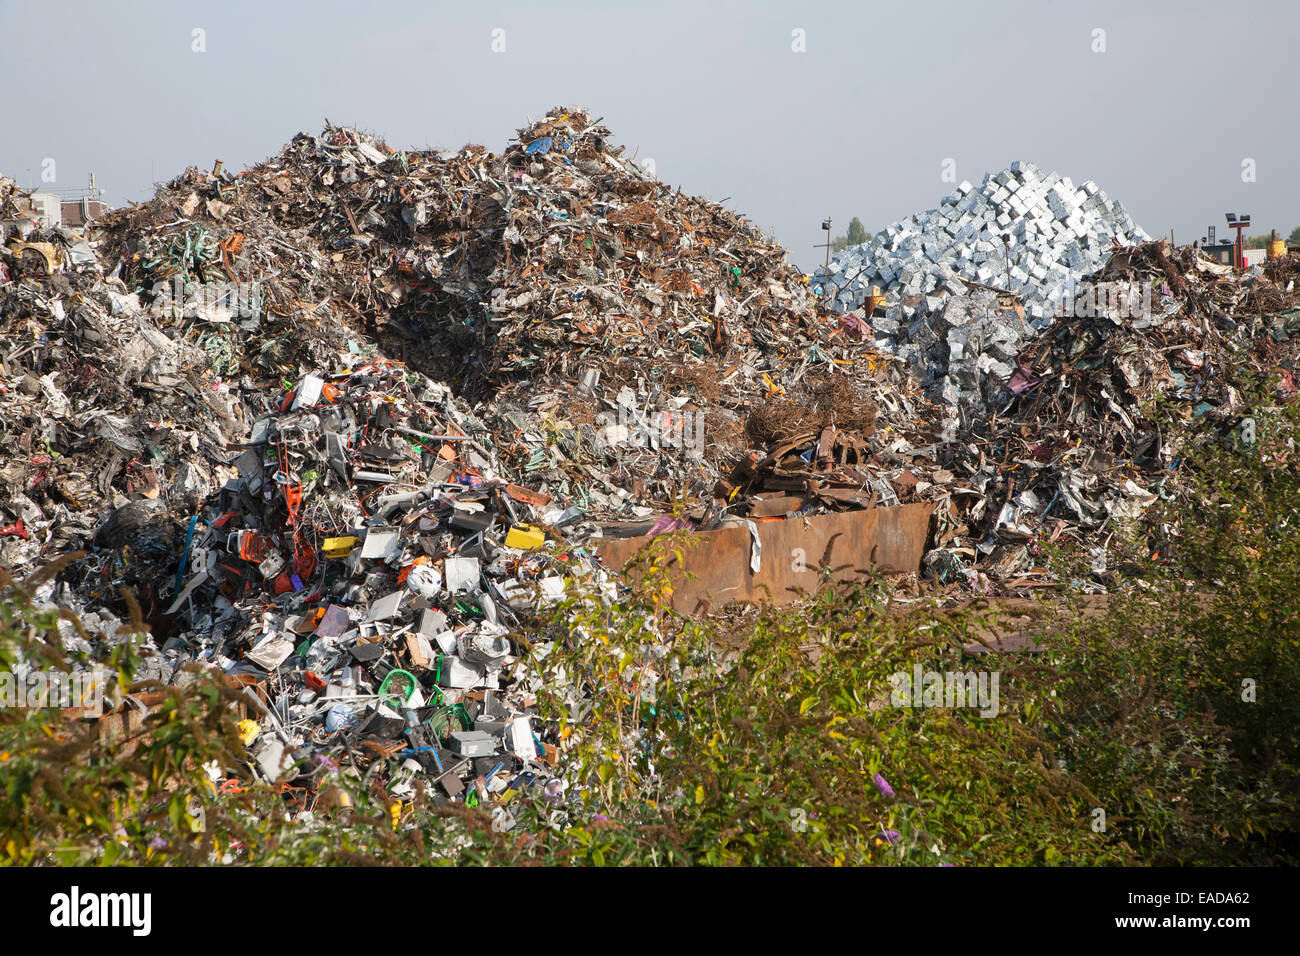 Scrap metal recycling EMR company, Swindon, England, UK Stock Photo